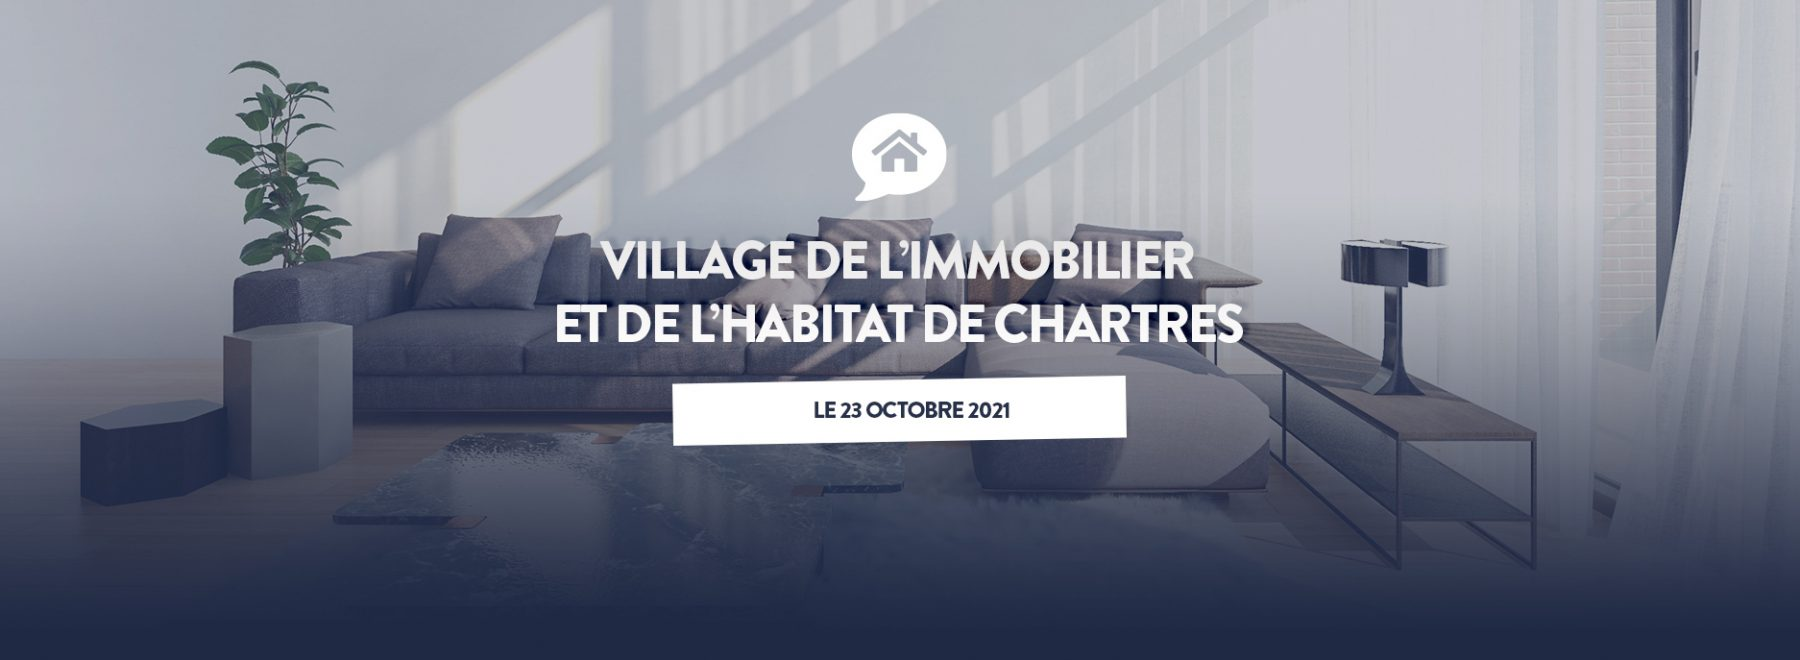 village_immobilier_chartres_2021